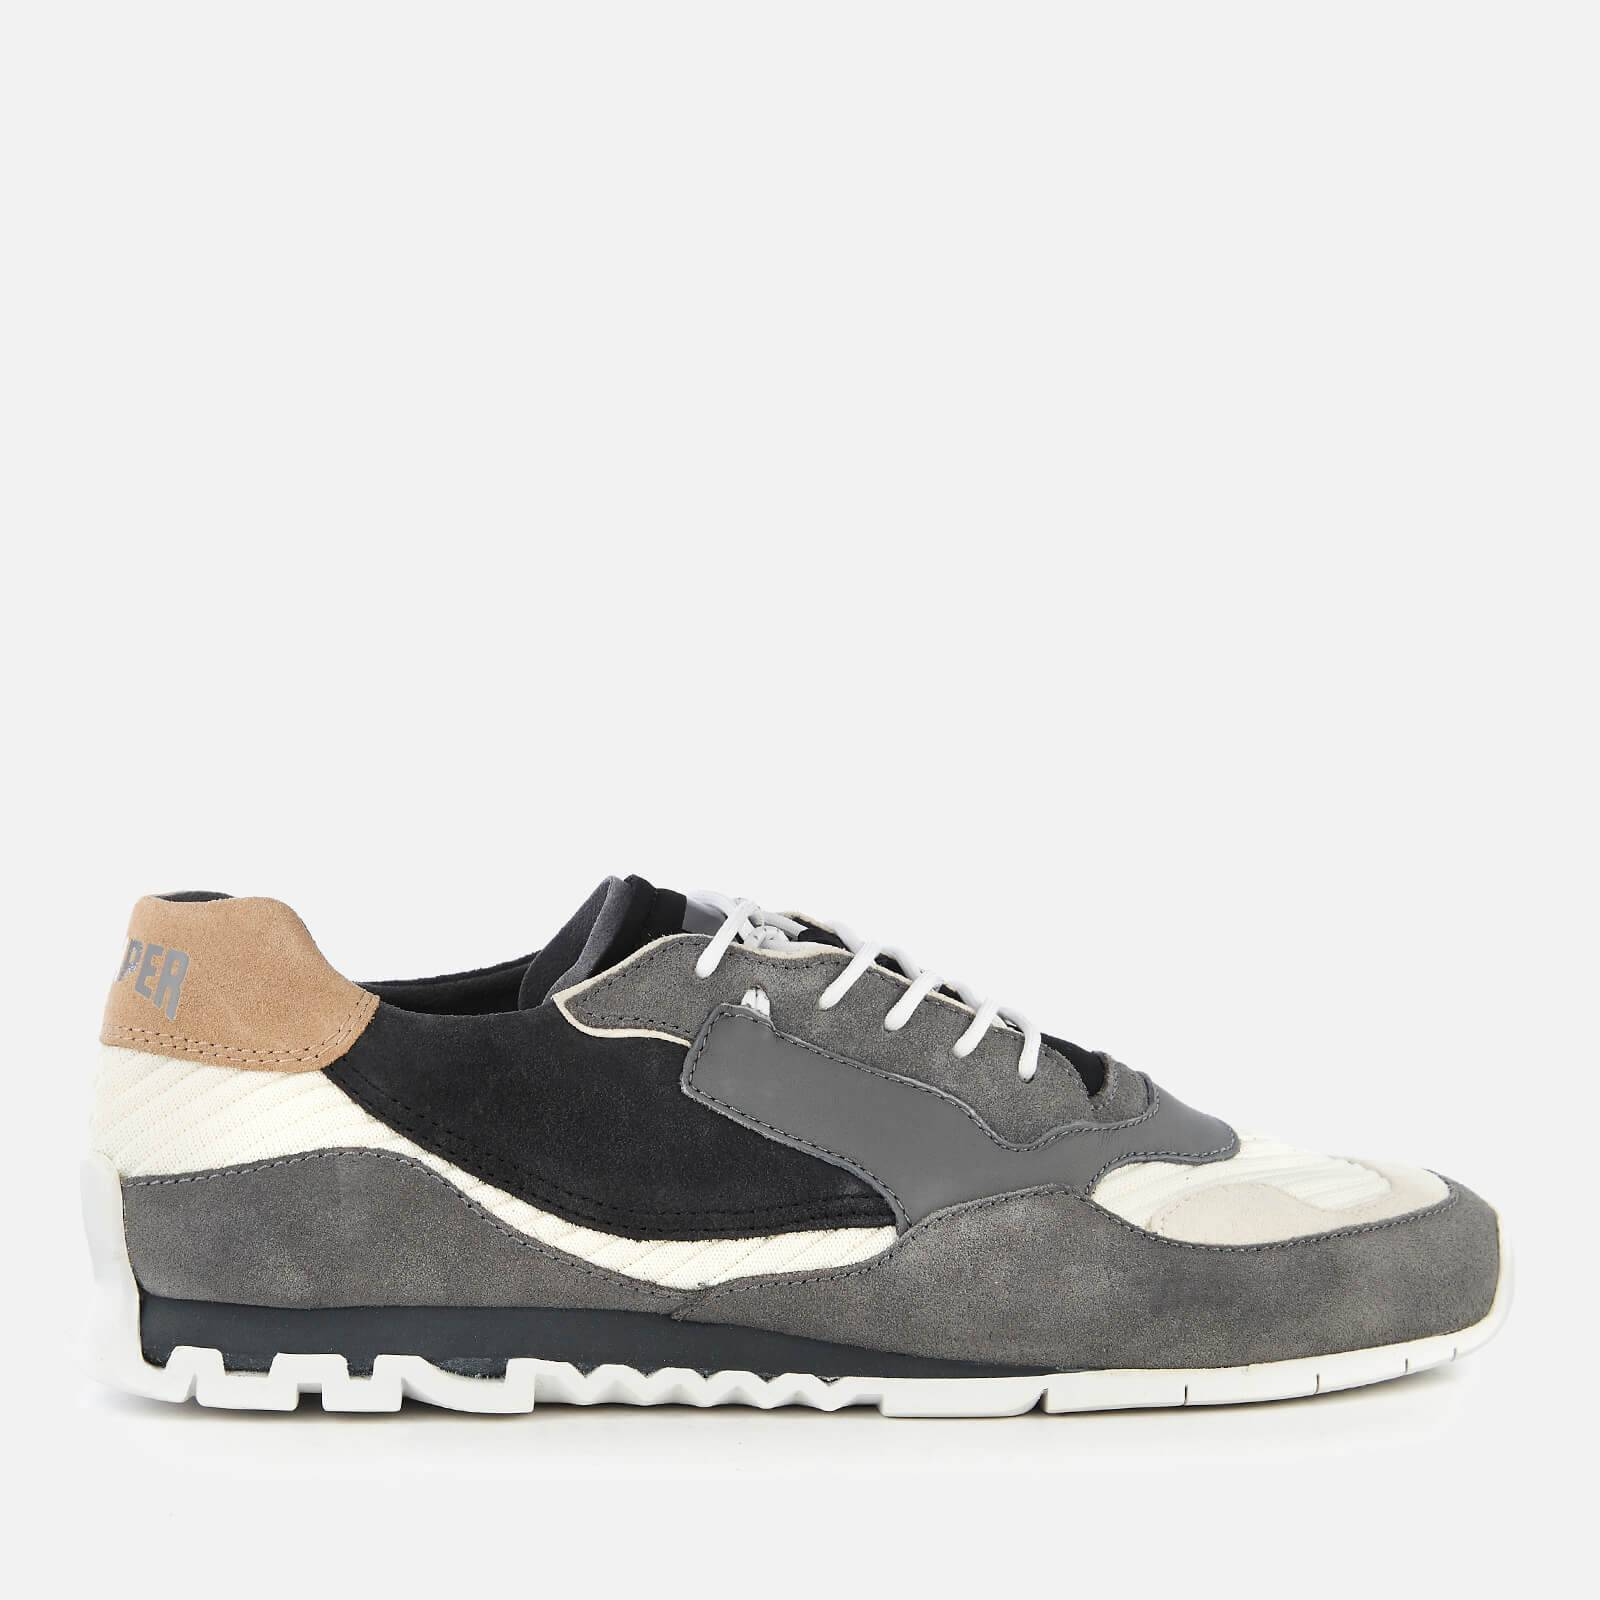 Camper Men's Nothing Low Profile Running Style Trainers - Multi - UK 10 - Grey